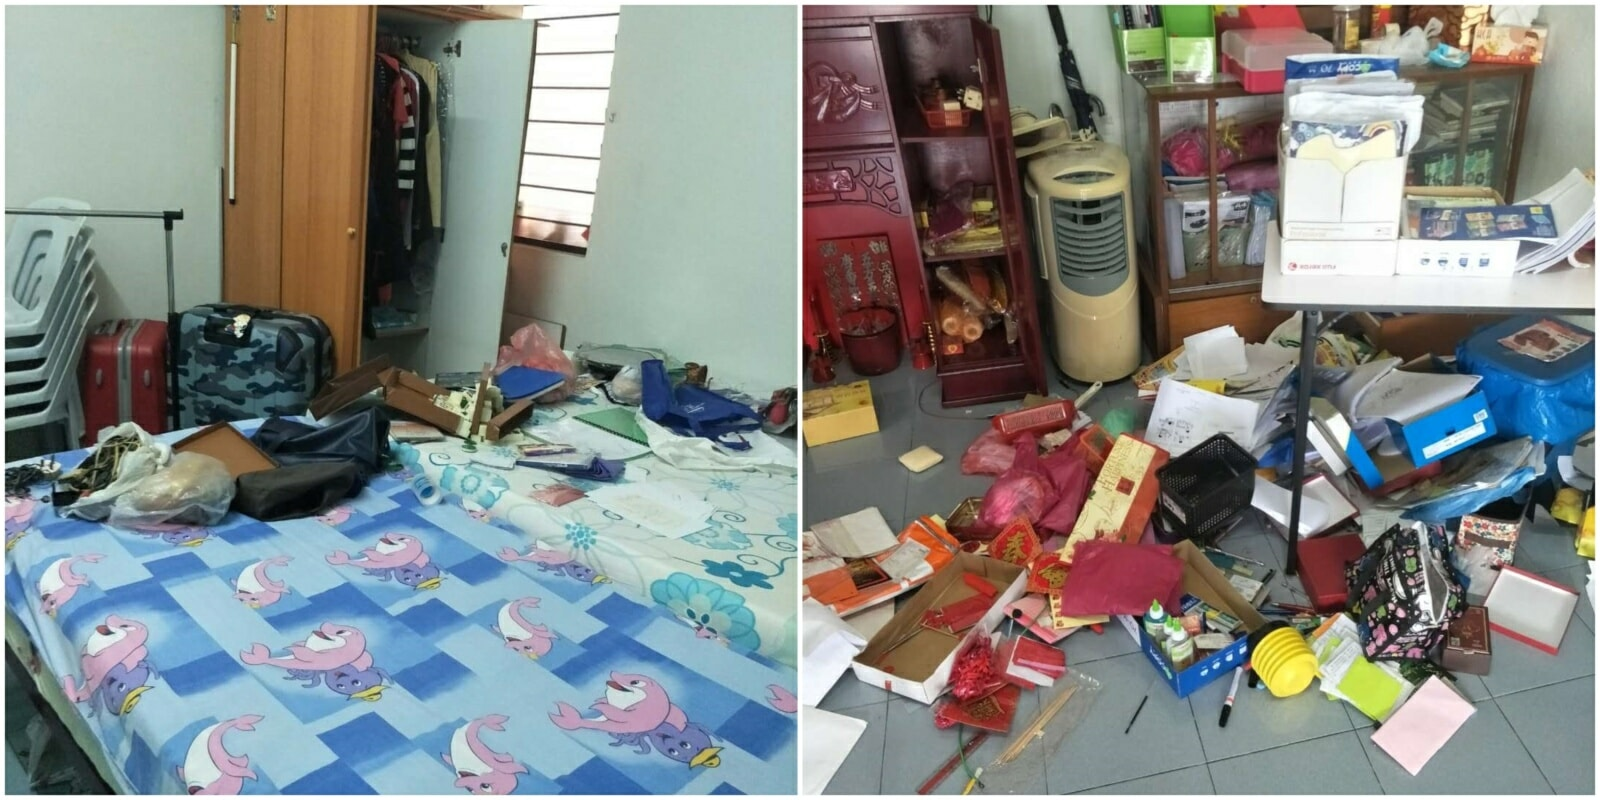 Burglars Break into Penang House, Leave With Nothing As They Can't Believe How Messy It Is - WORLD OF BUZZ 2